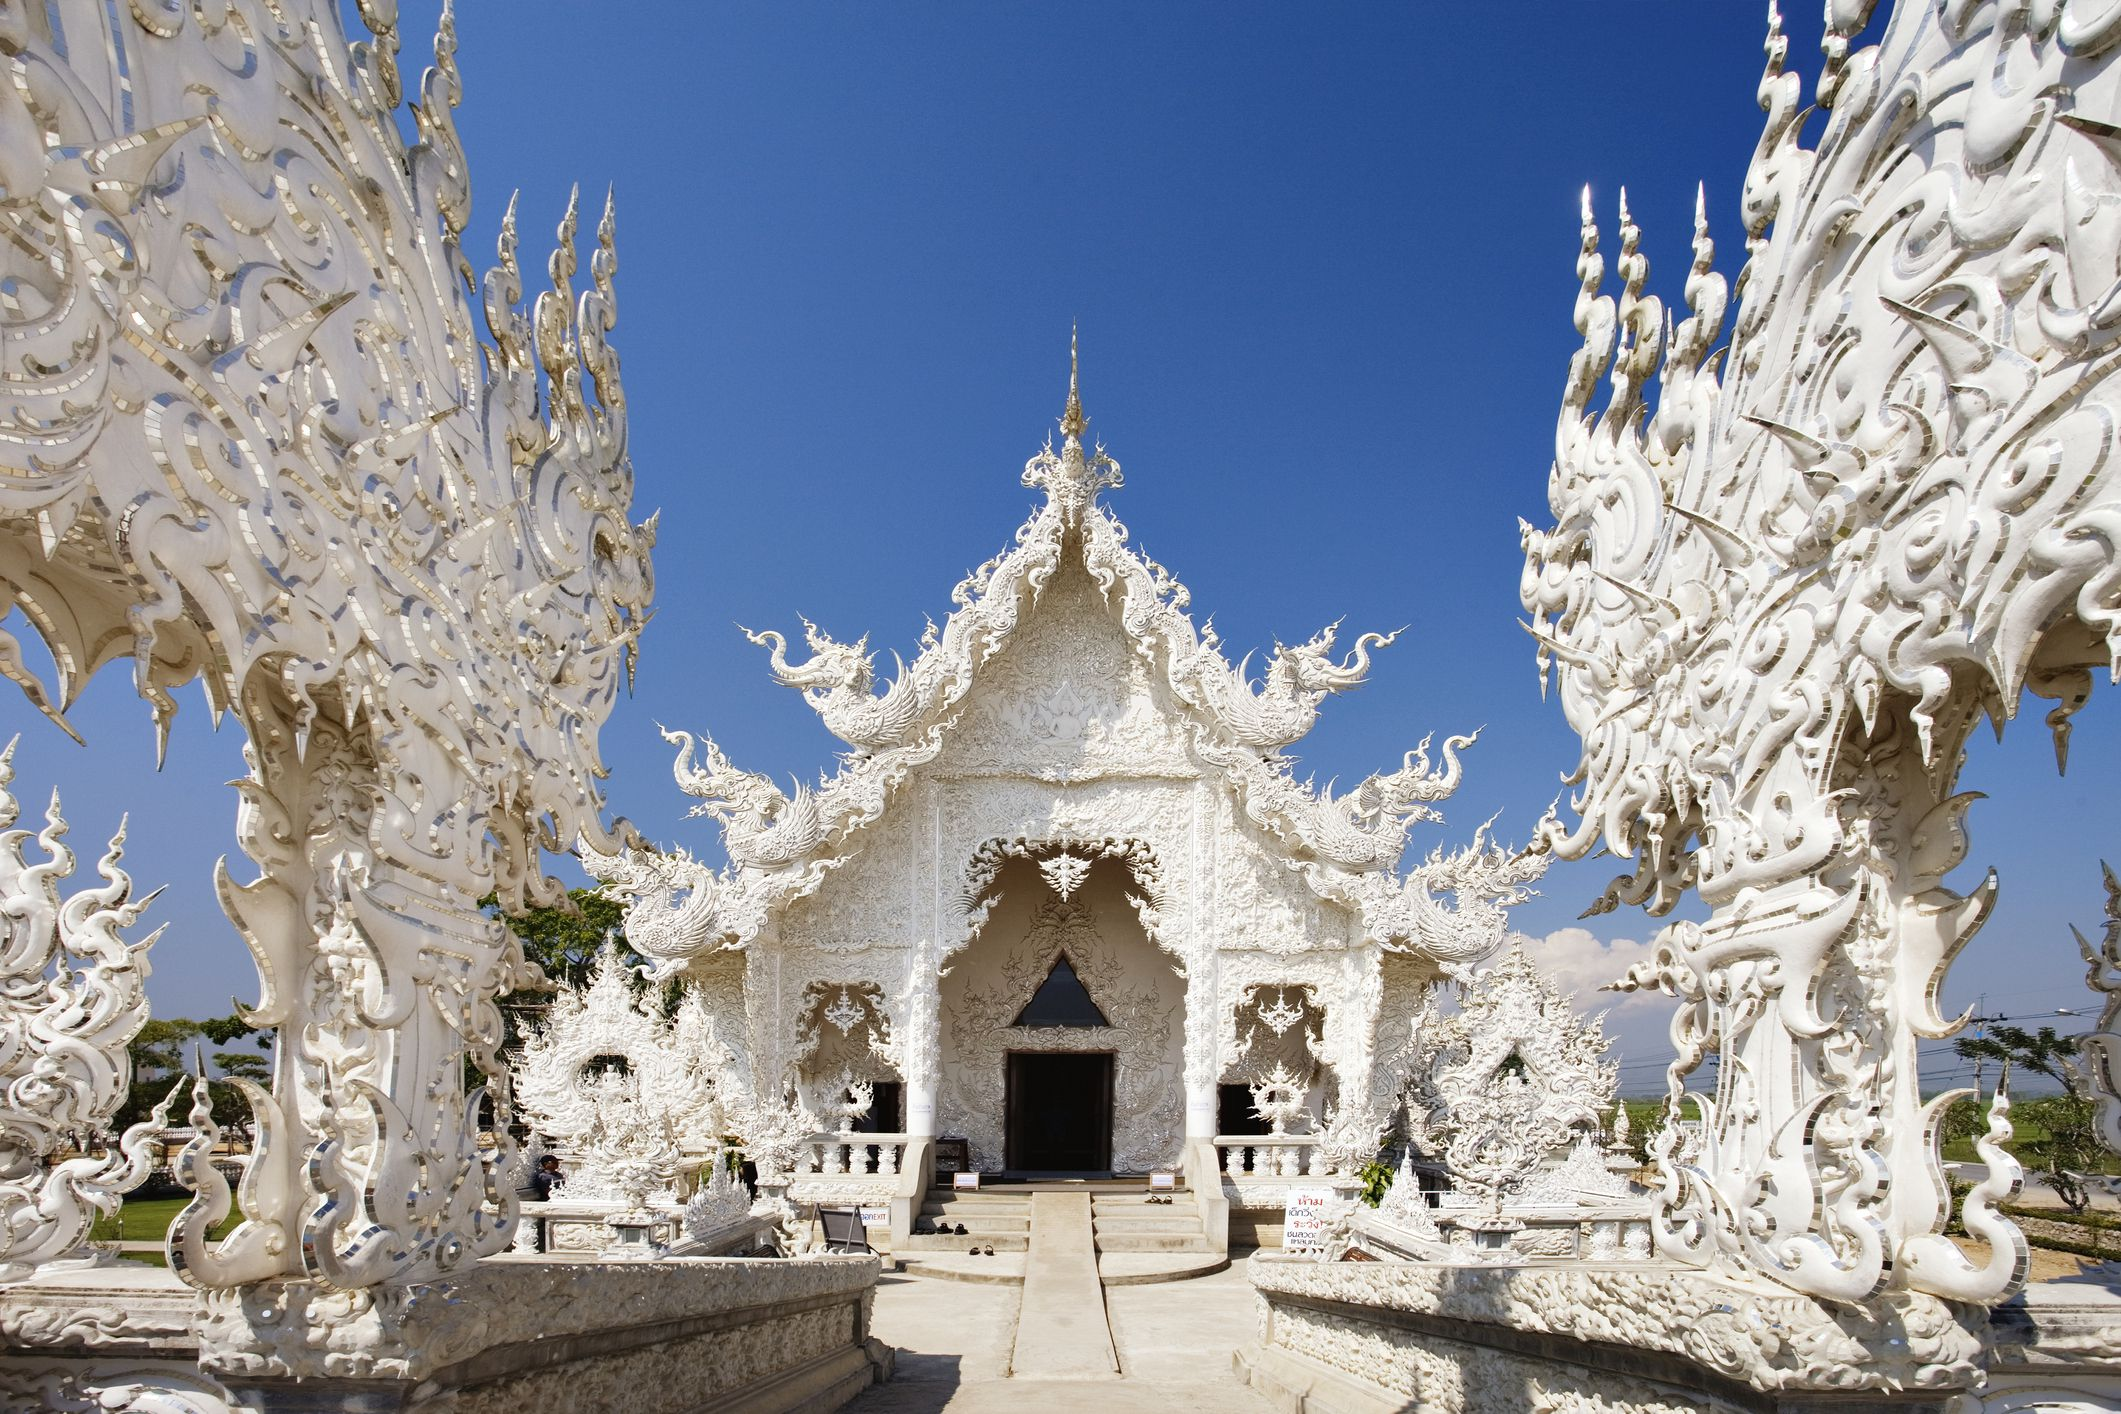 The Top 10 Things To Do In Chiang Rai Thailand